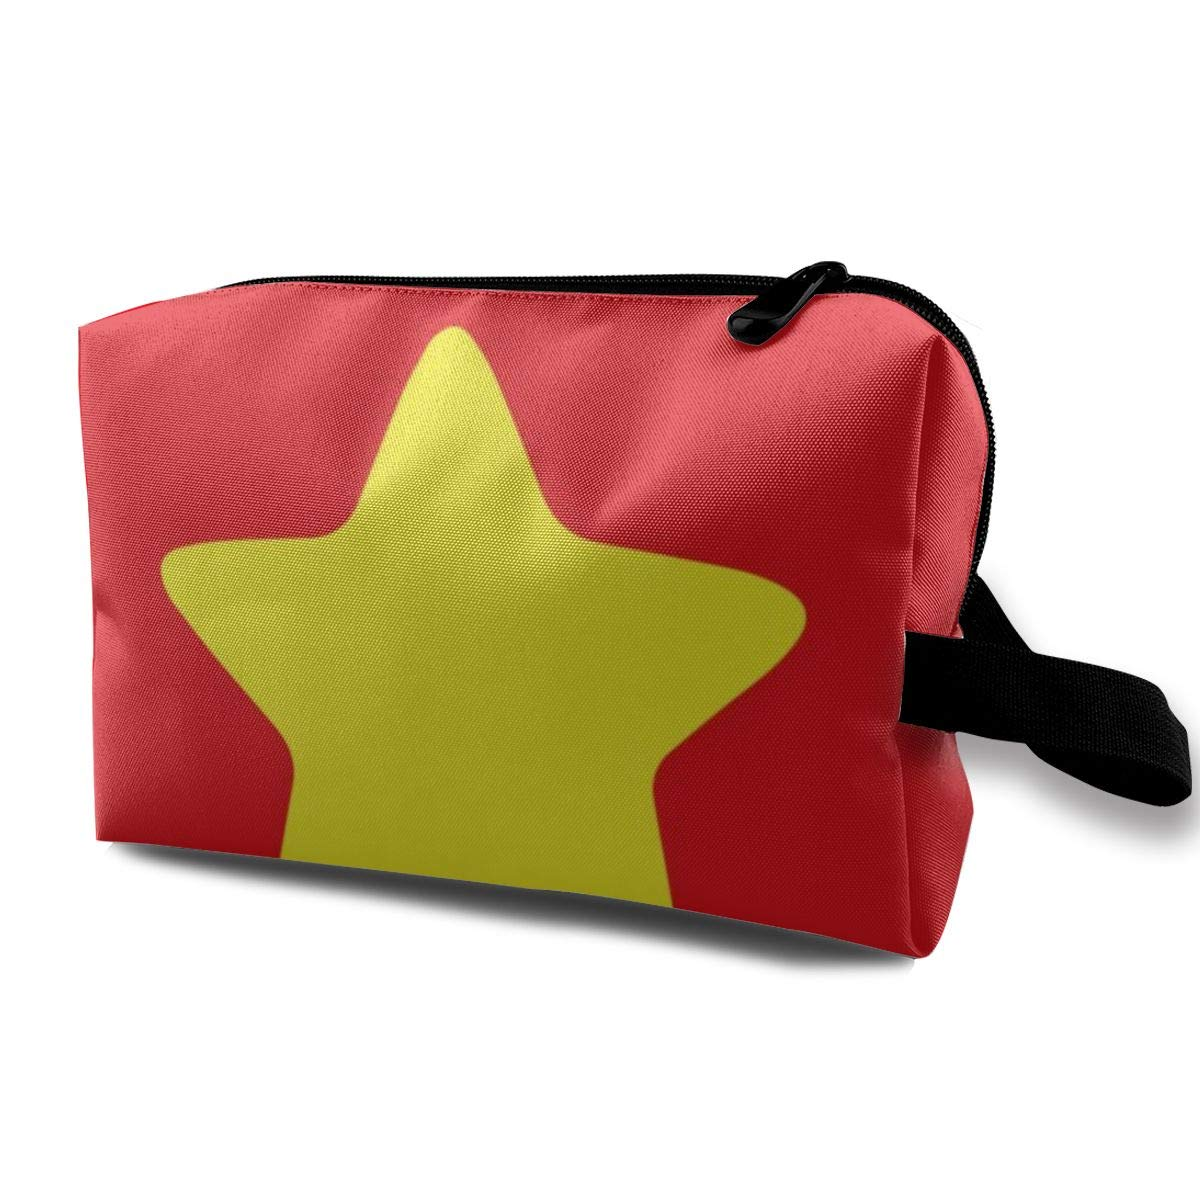 Makeup Bag Cosmetic Pouch Steven Universe Yellow Star, Trucker Cap Multi-Functional Bag Travel Kit Storage Bag